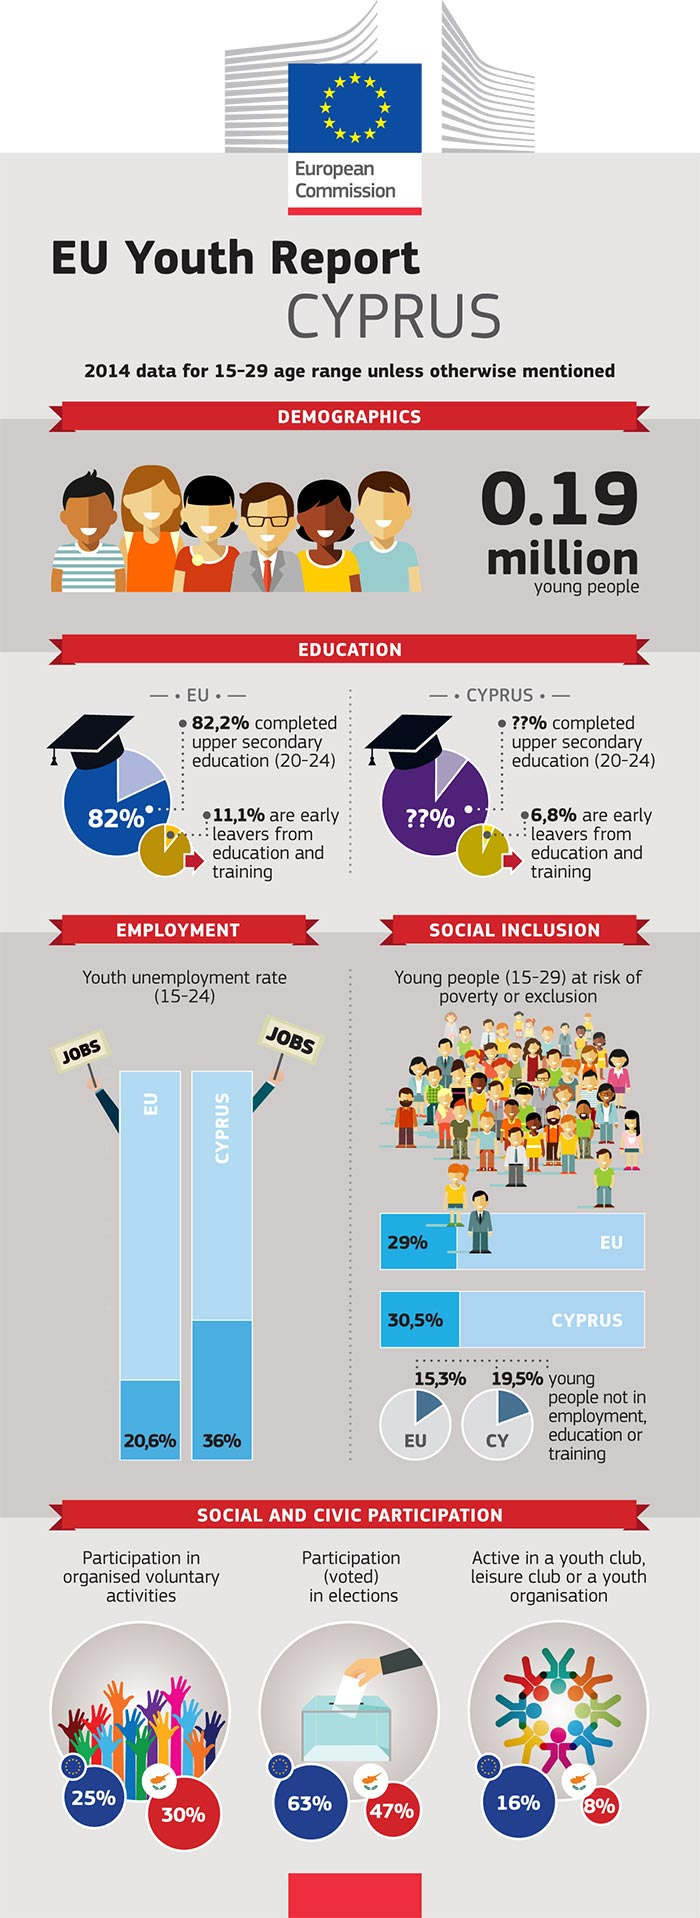 EU Youth Report infographic: Cyprus